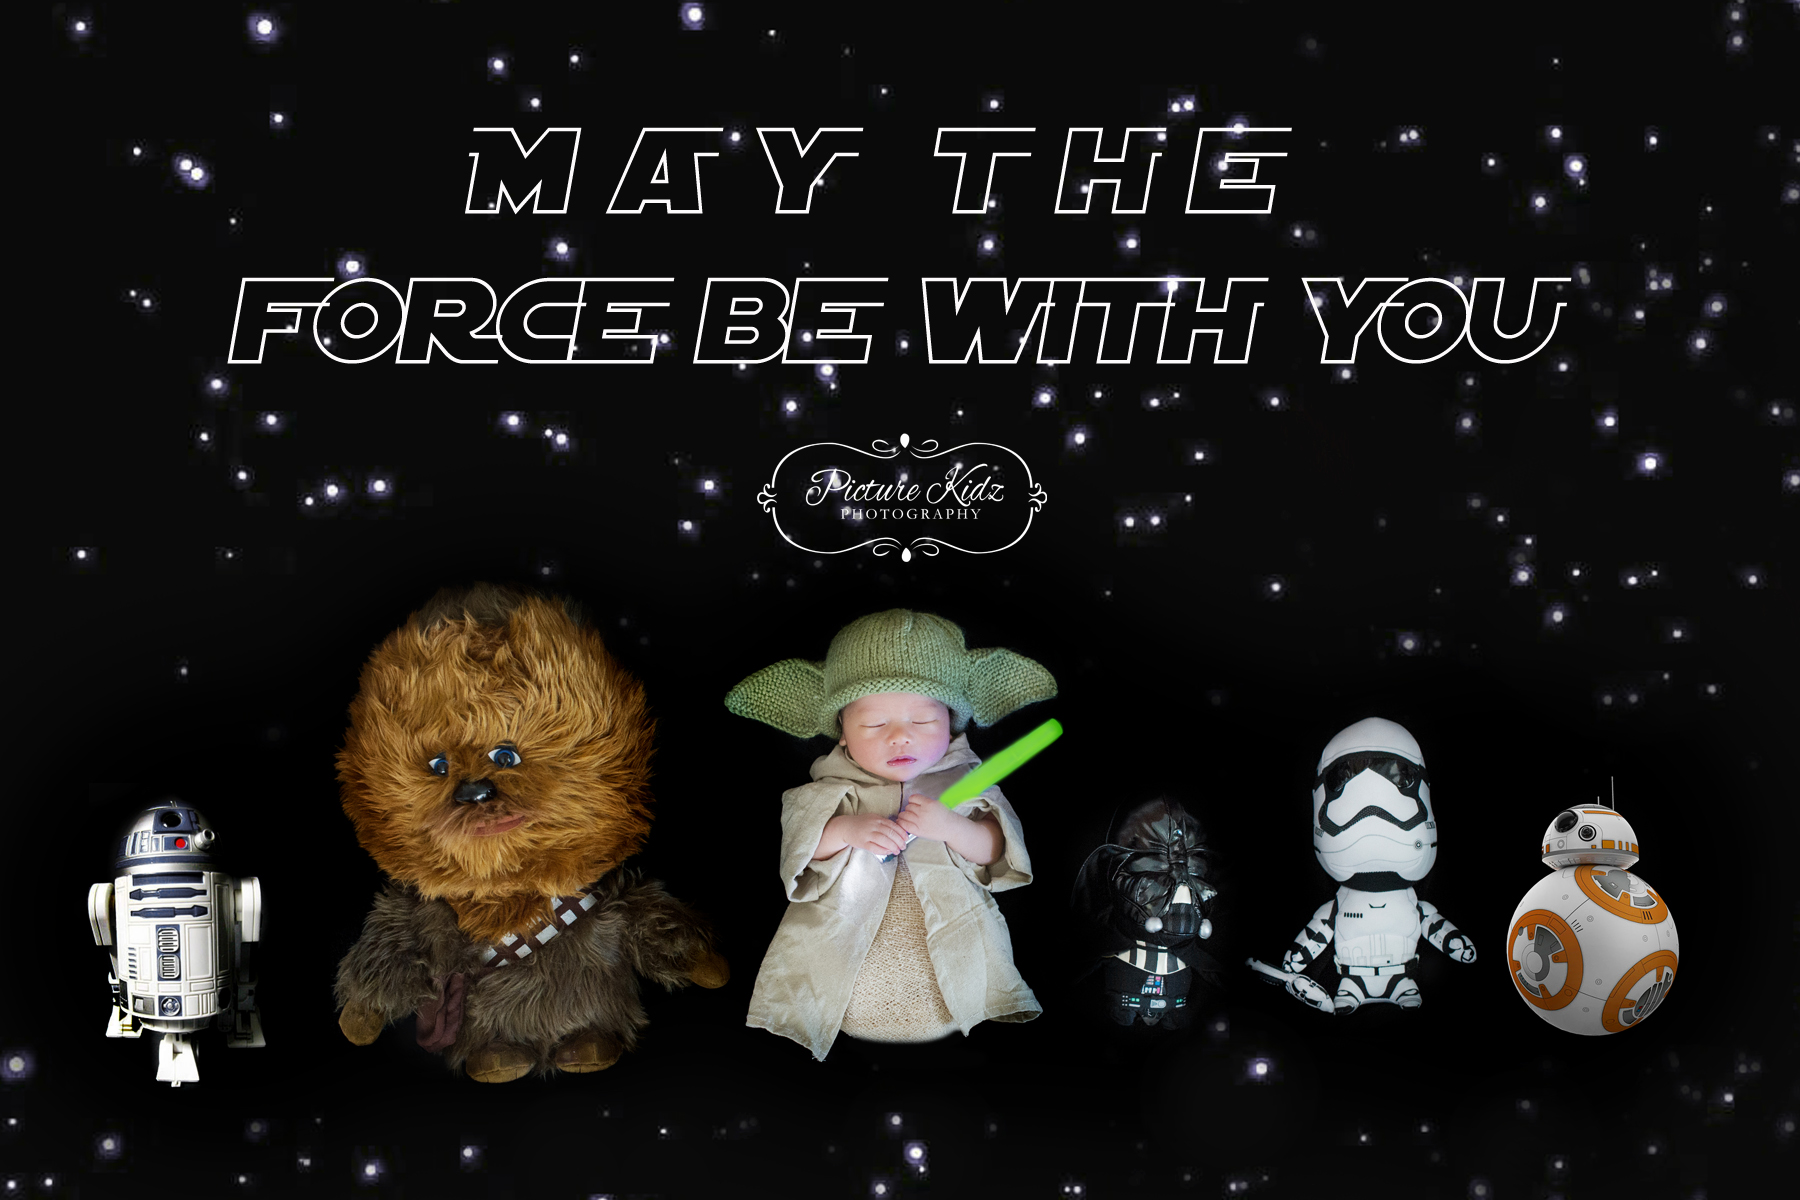 erPICTUREKIDZ May force be with you Star Wars-2